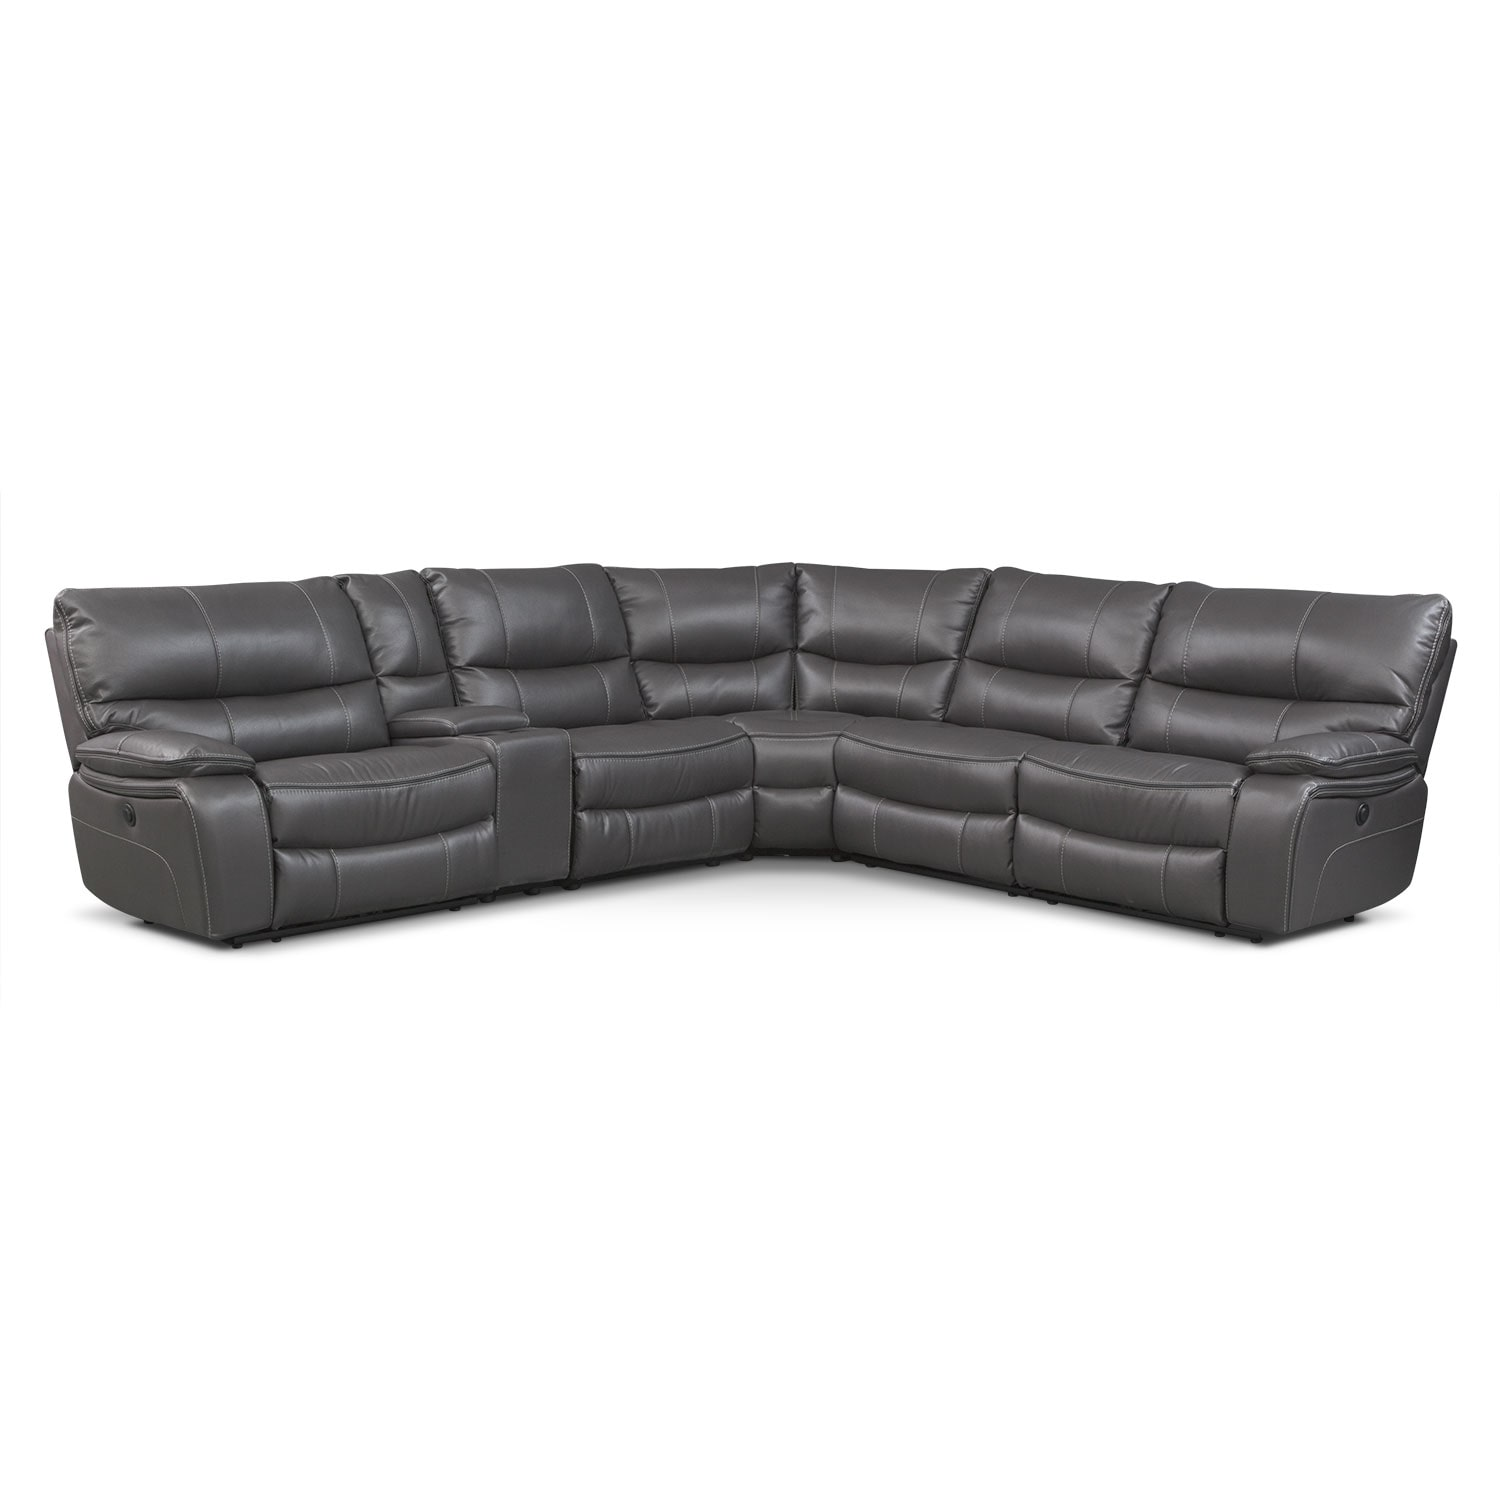 [Orlando 6 Pc. Power Reclining Sectional]